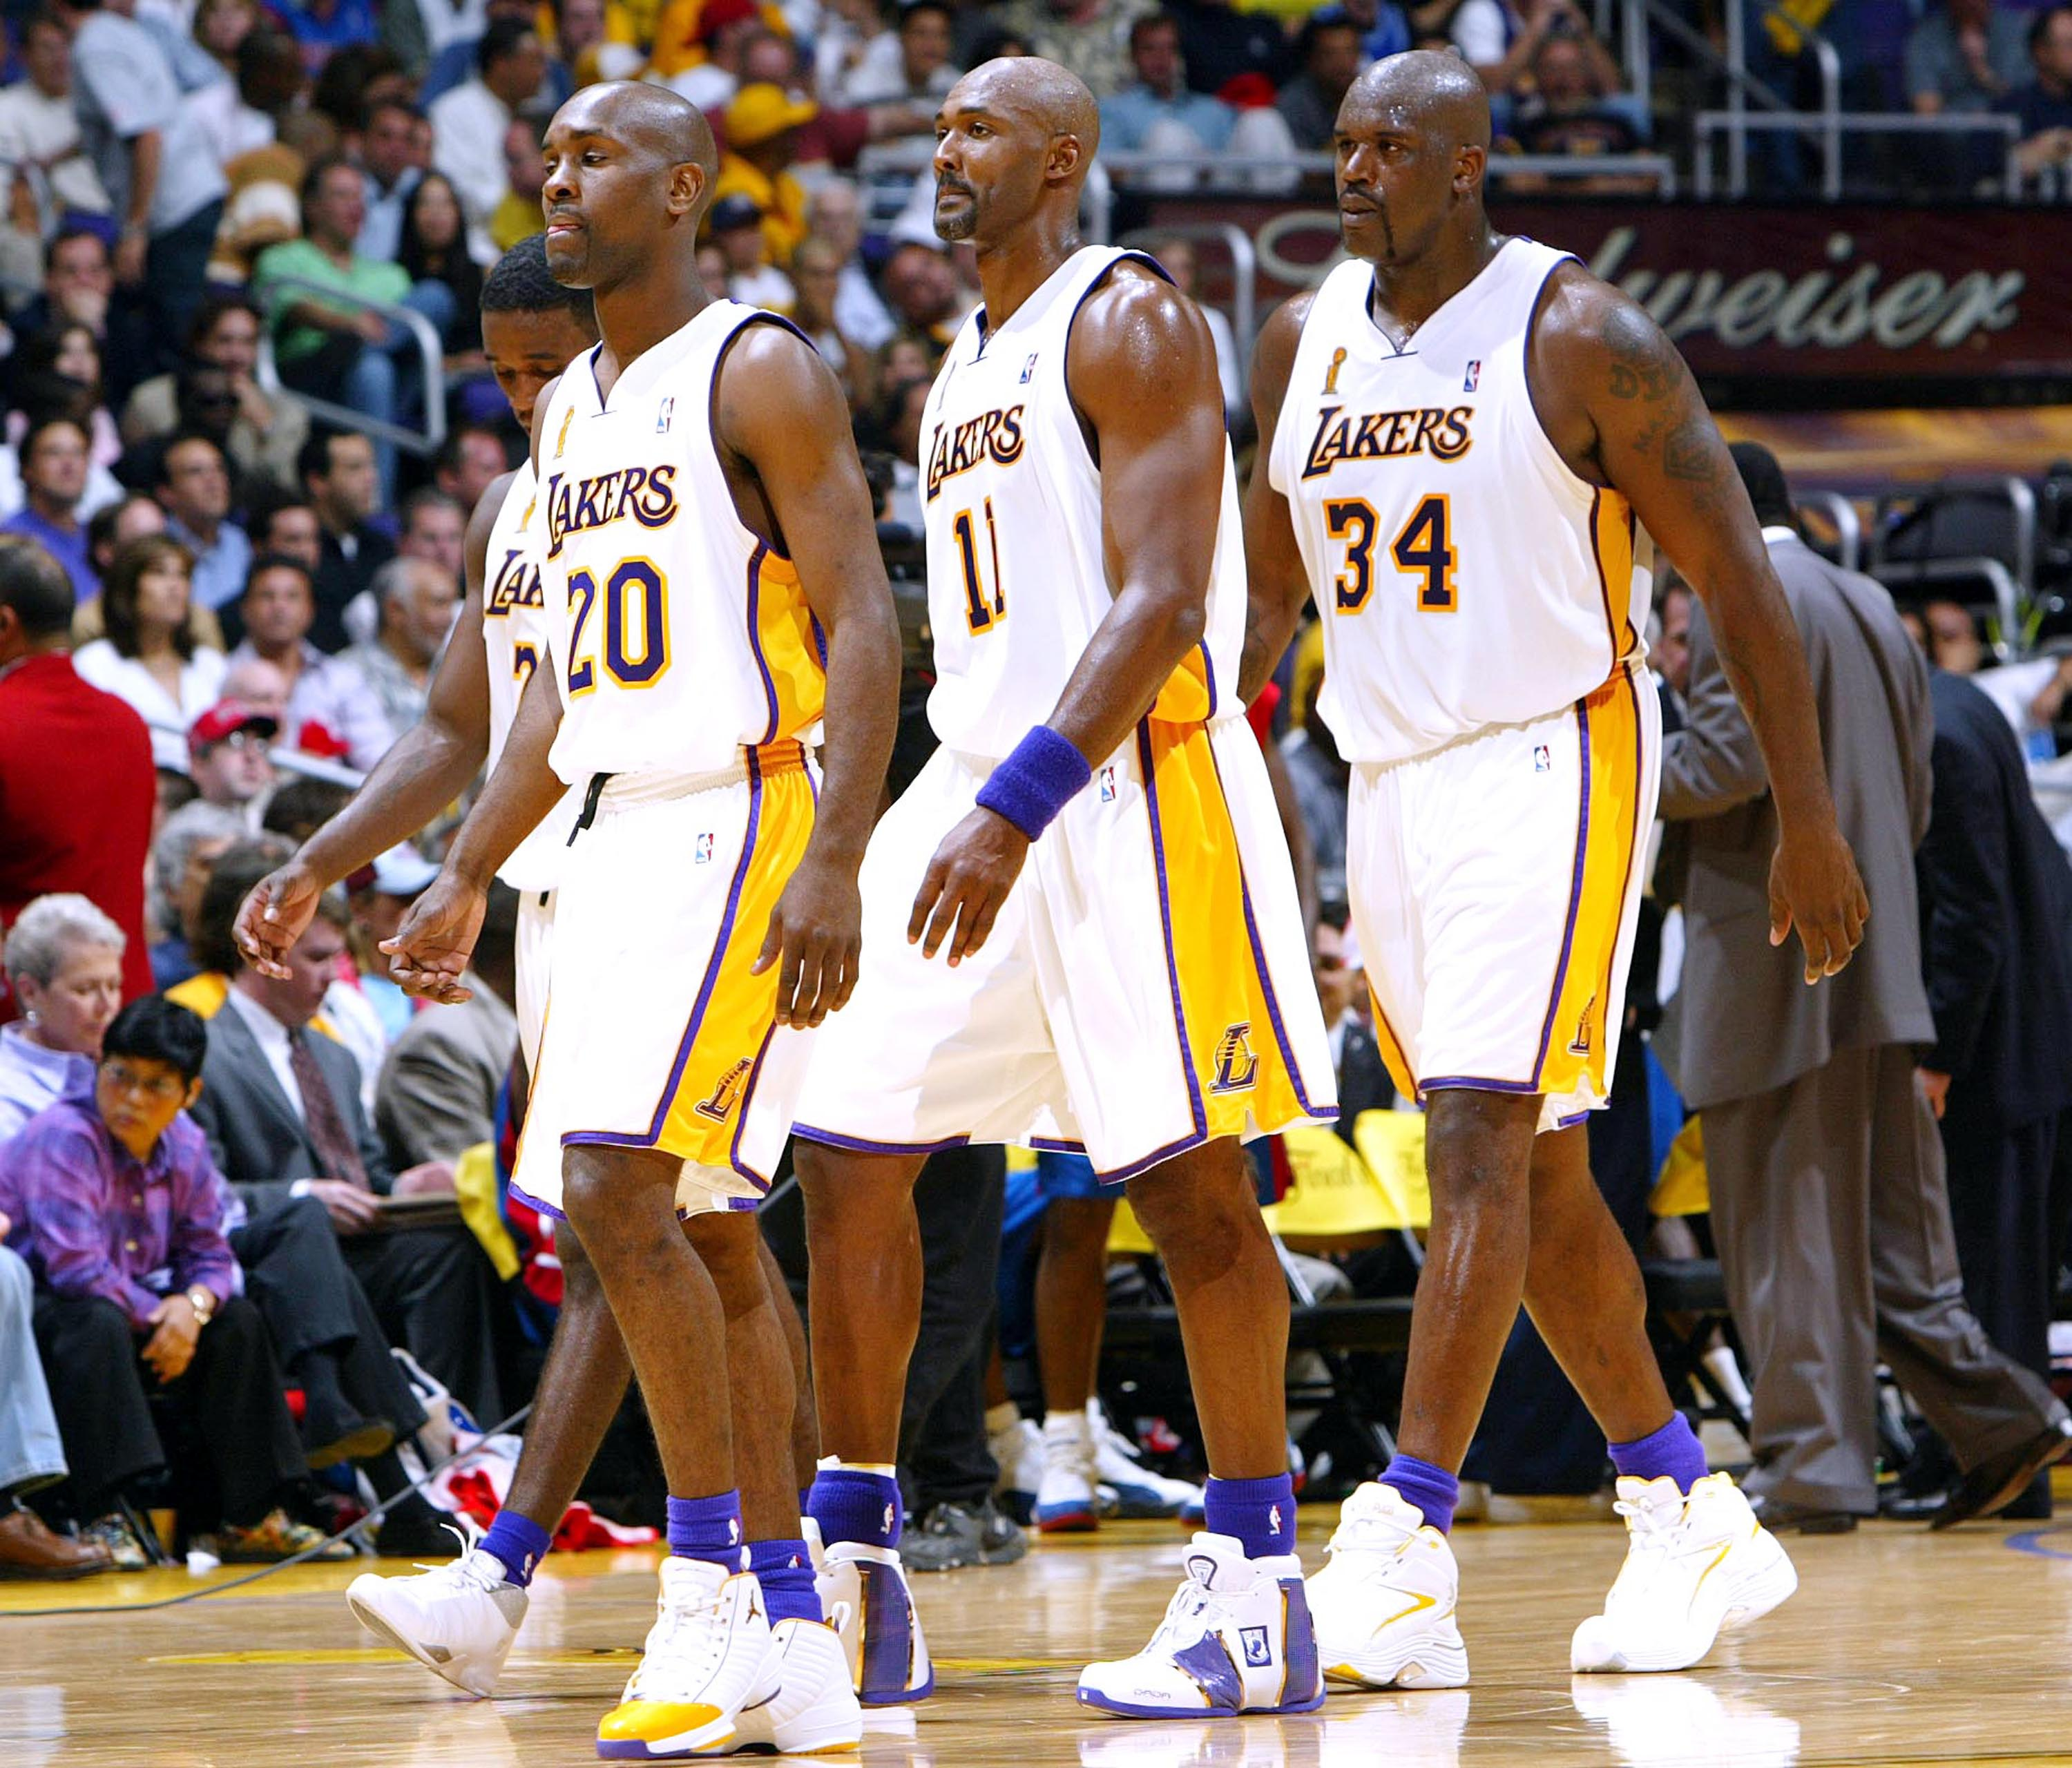 LOS ANGELES - JUNE 6:  Gary Payton #20, Kareem Rush #21, Karl Malone #11 and Shaquille O'Neal #34 of the Los Angeles Lakers walk off the court in Game 1 of the 2004 NBA Finals against the Detroit Pistons on June 6, 2004 at Staples Center in Los Angeles, C